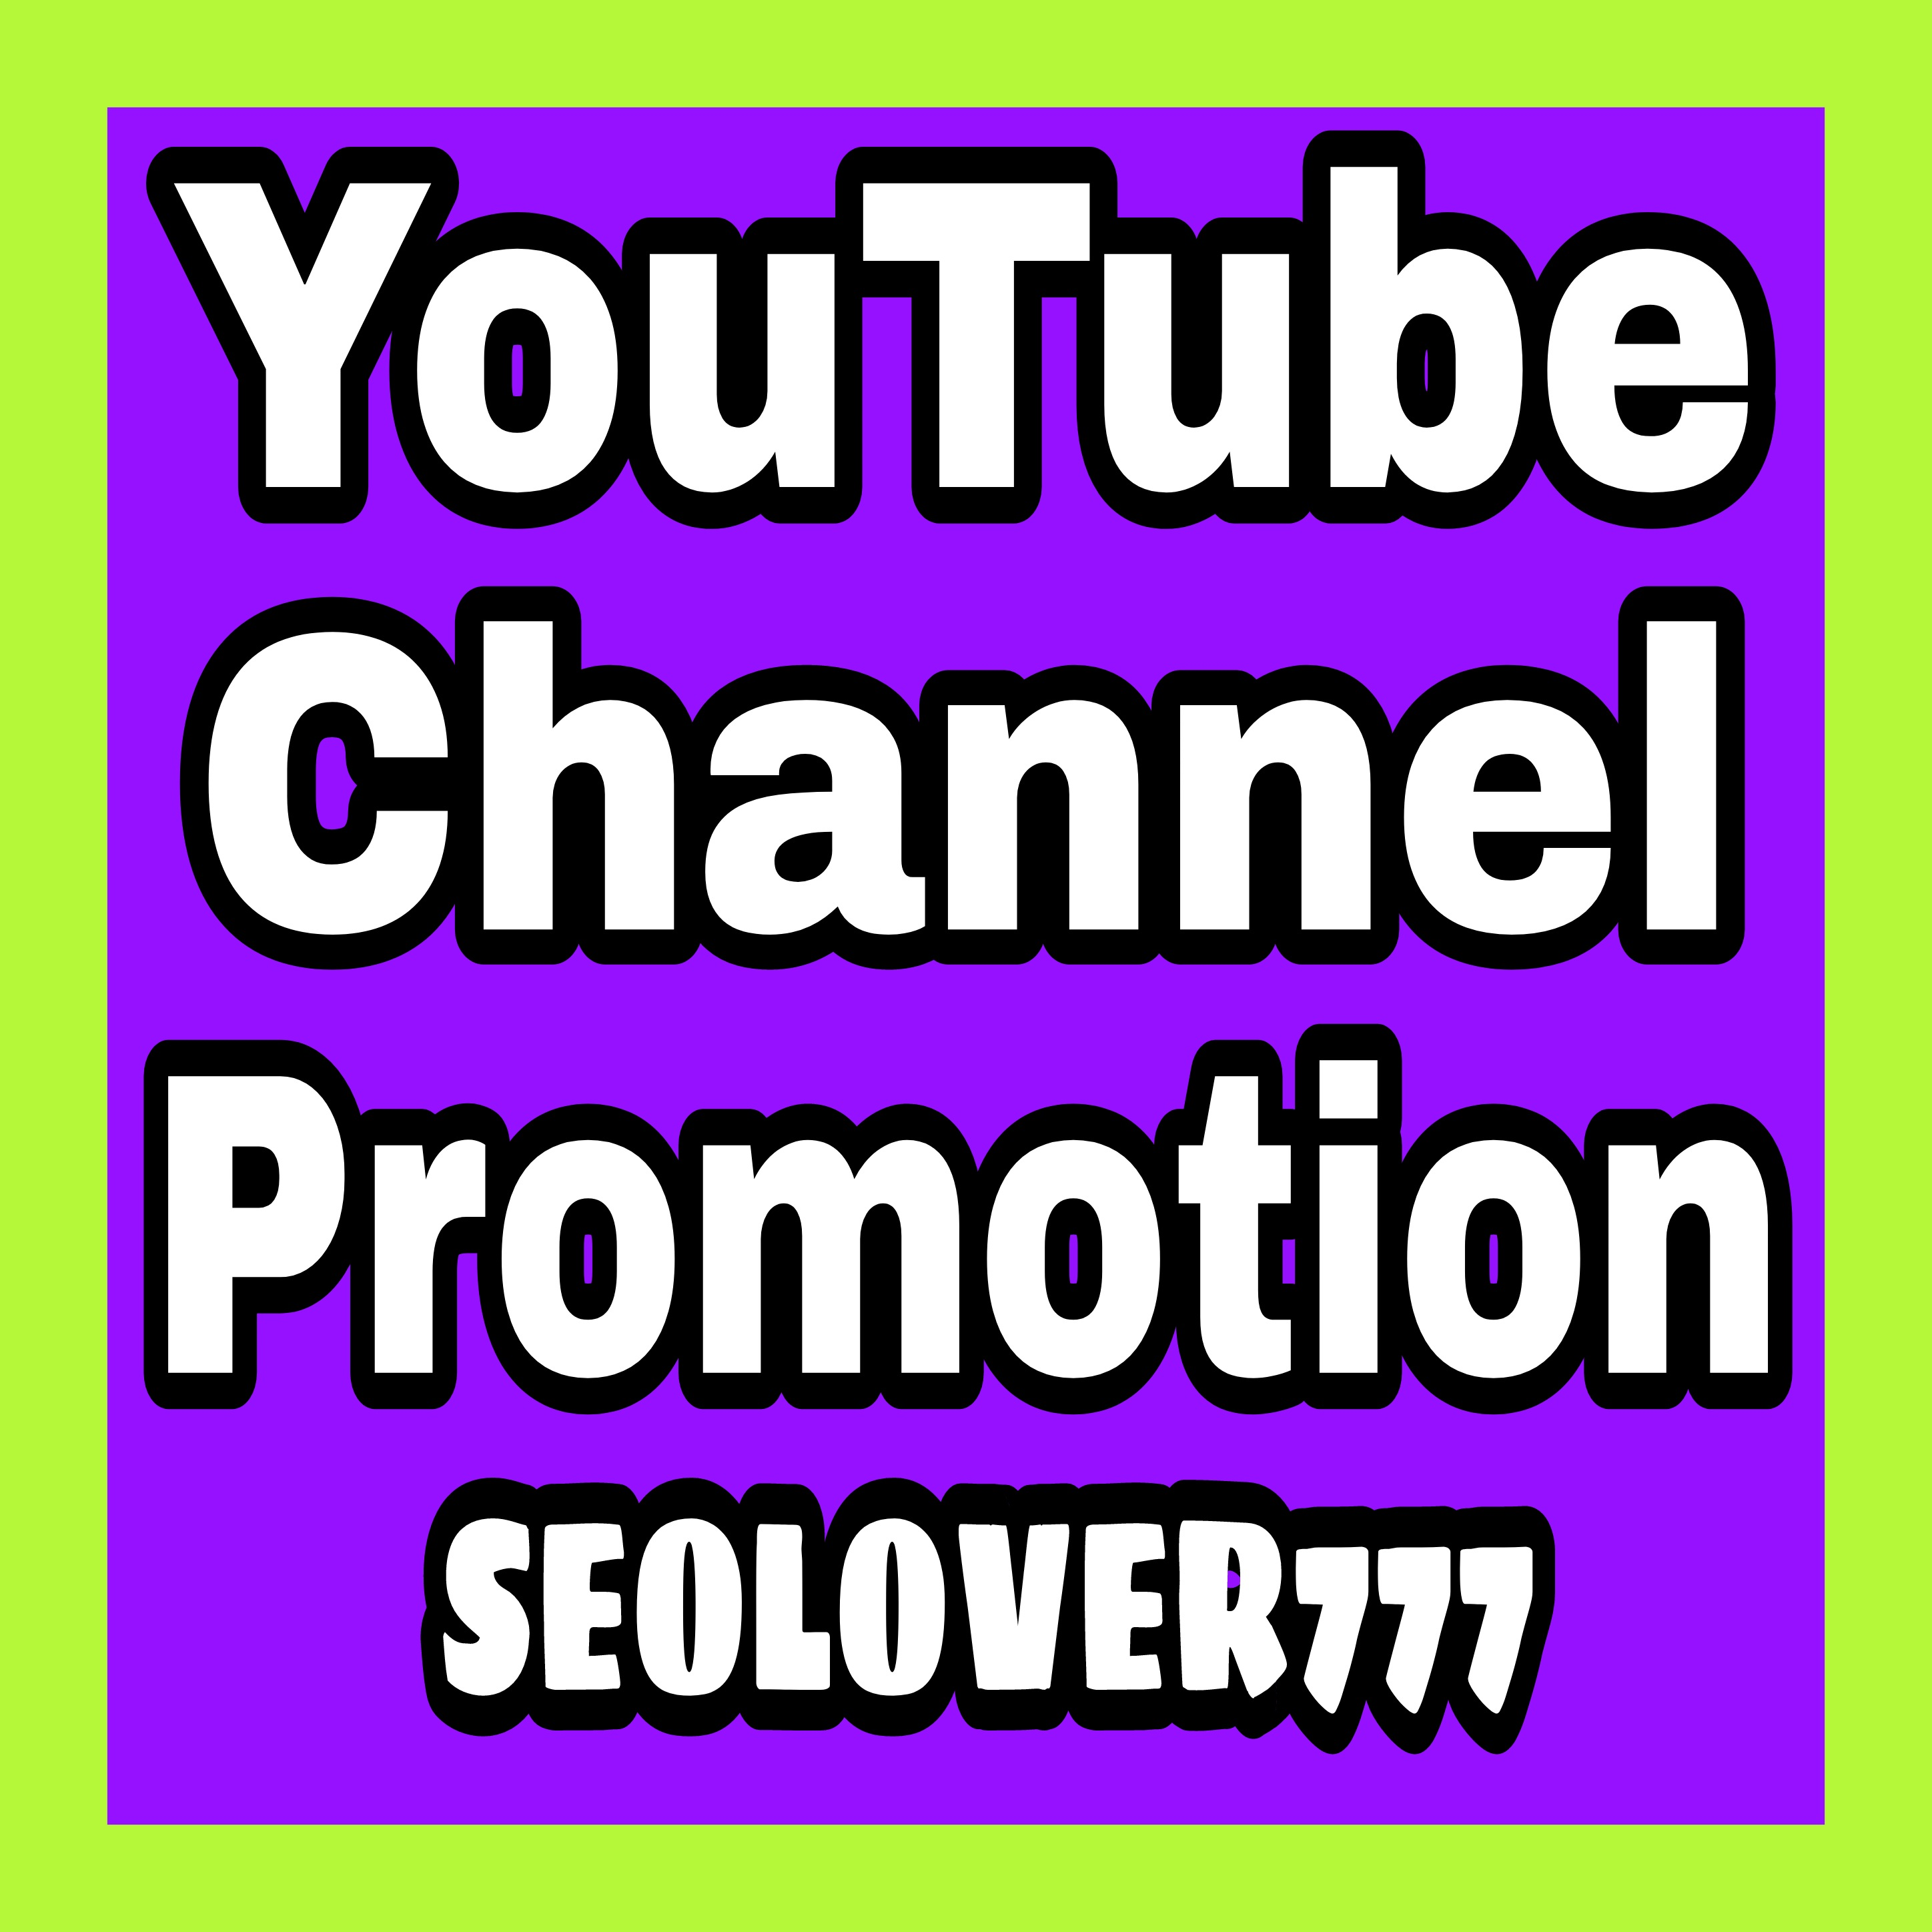 YouTube organic promotion & marketing via active audience